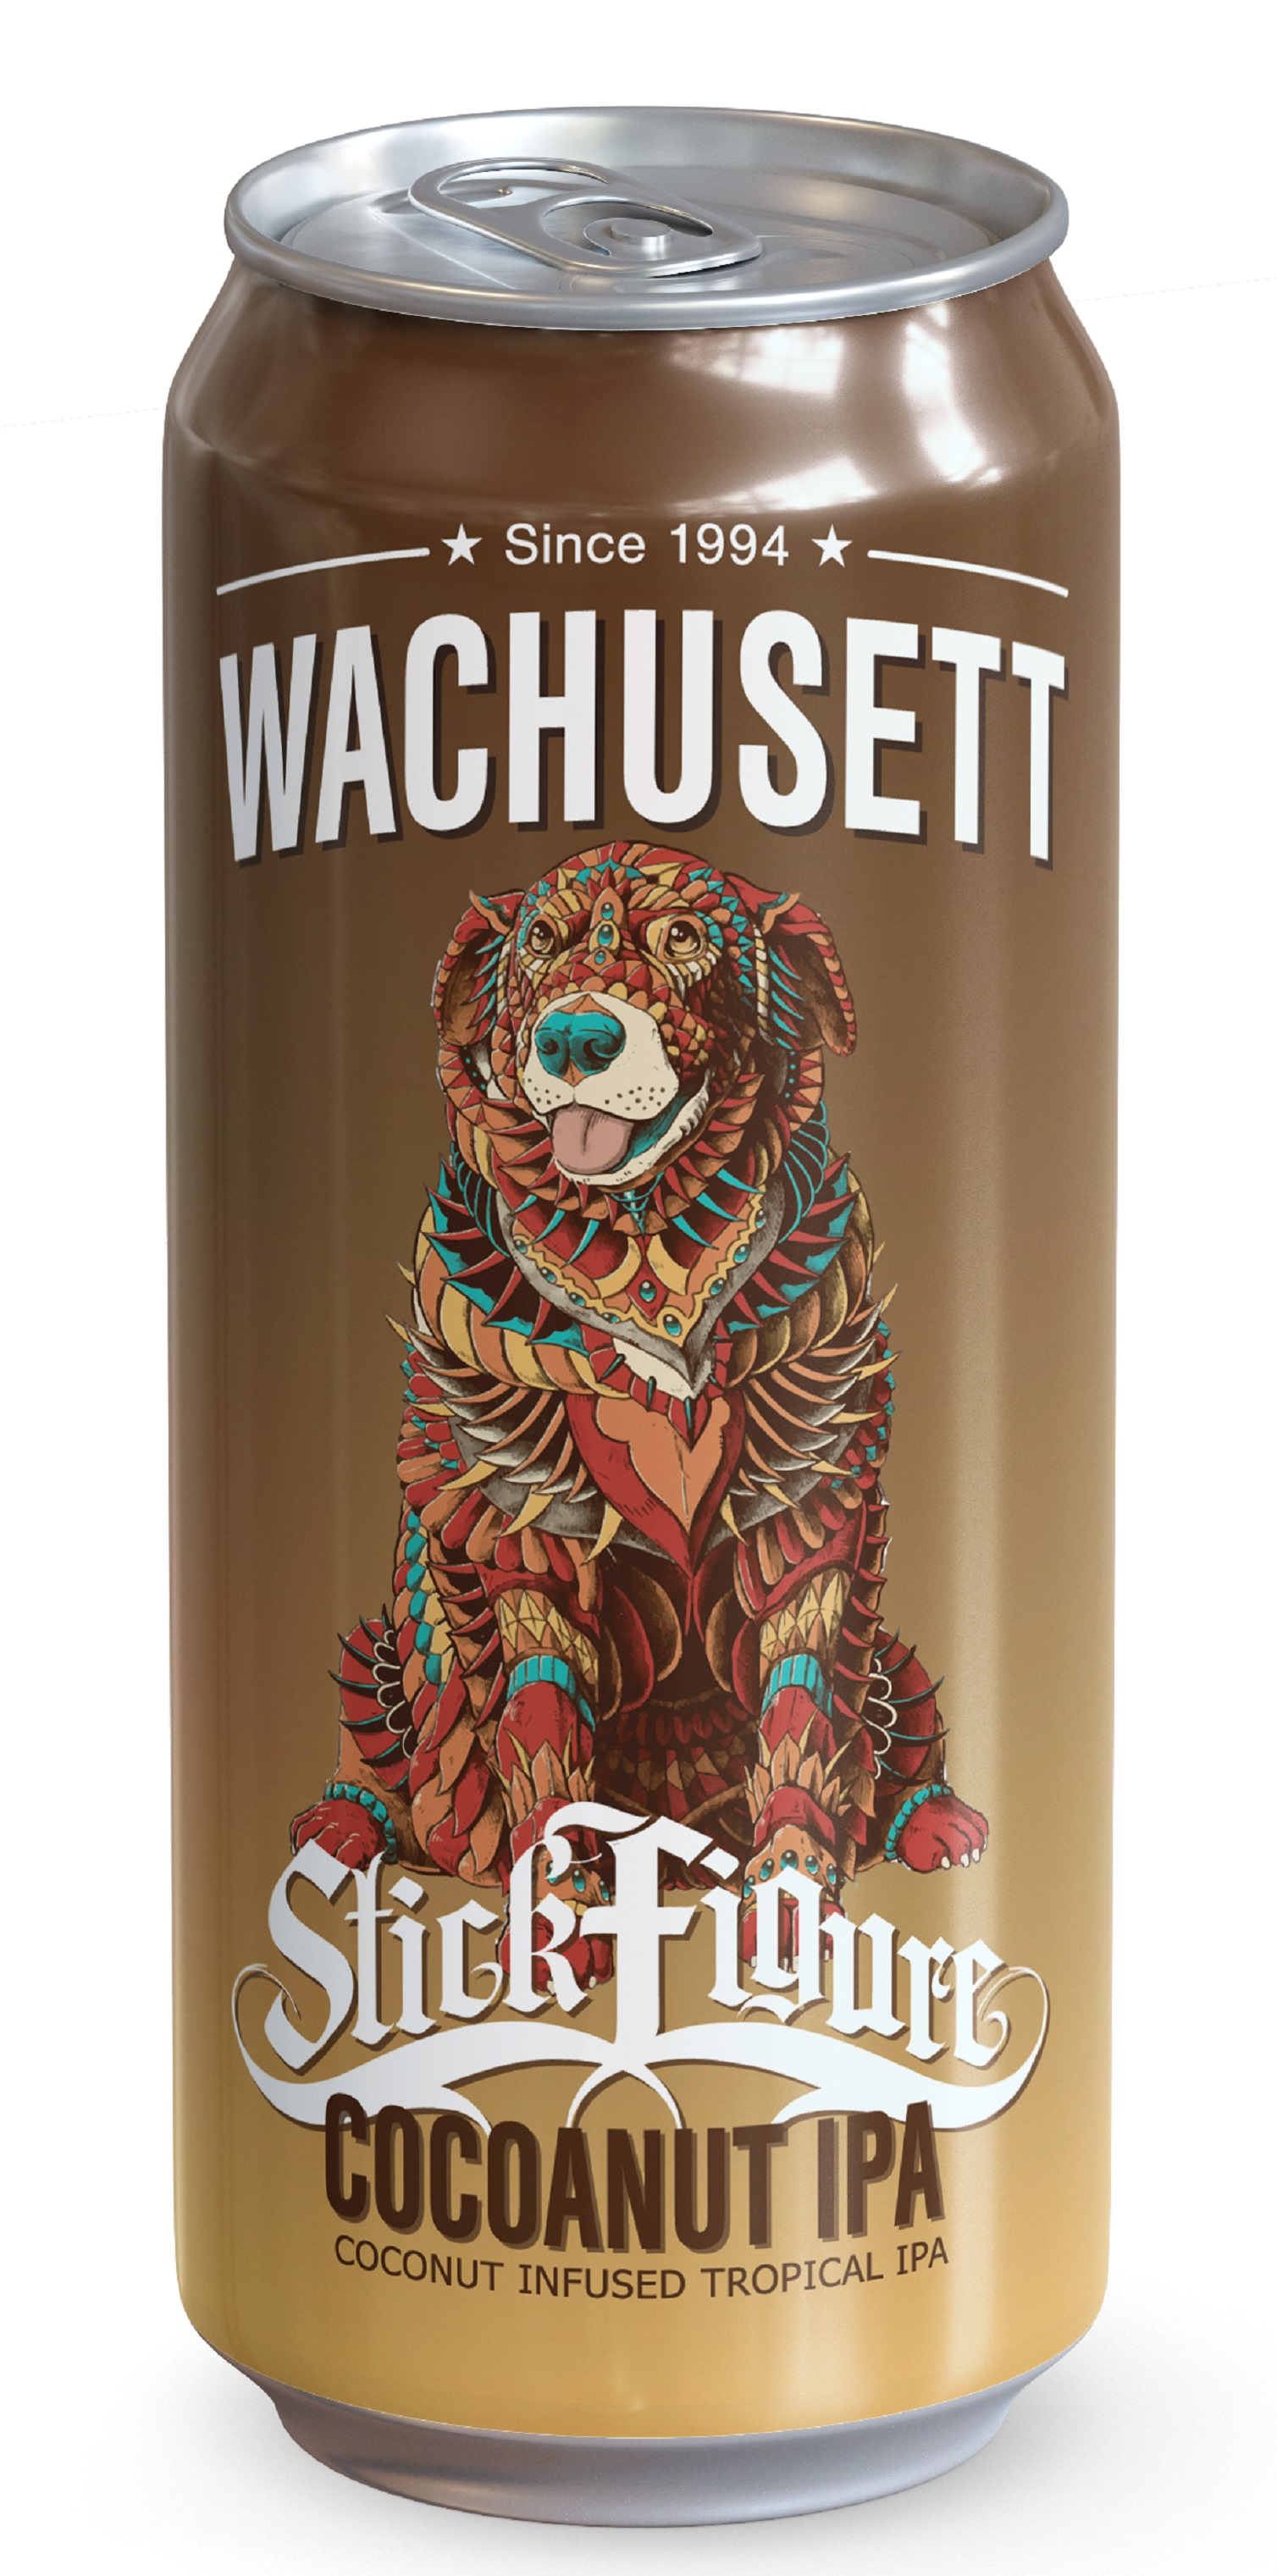 Wachusett Brewing Partners with Stick Figure on New Beer